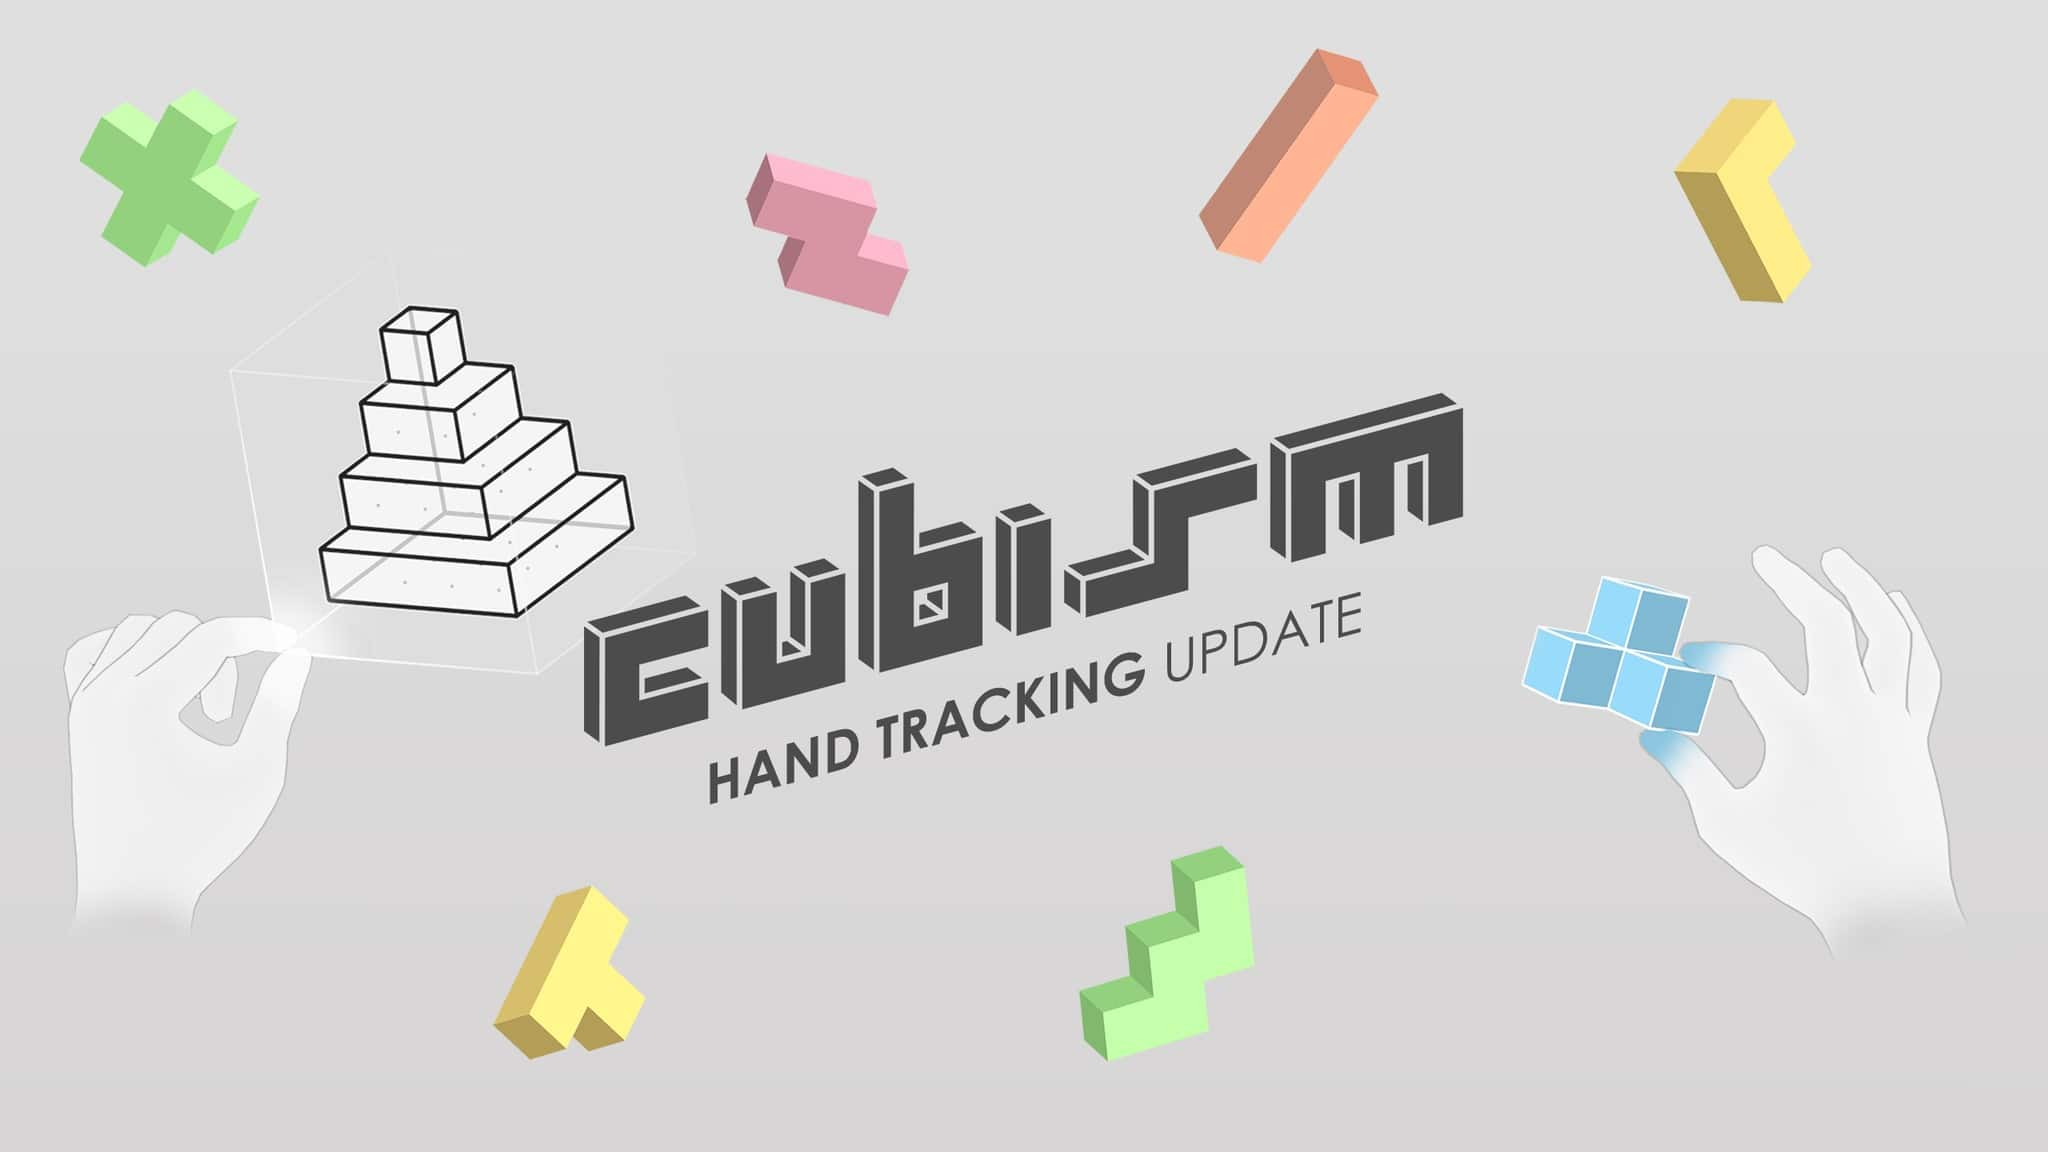 Cubism Hand Tracking Update